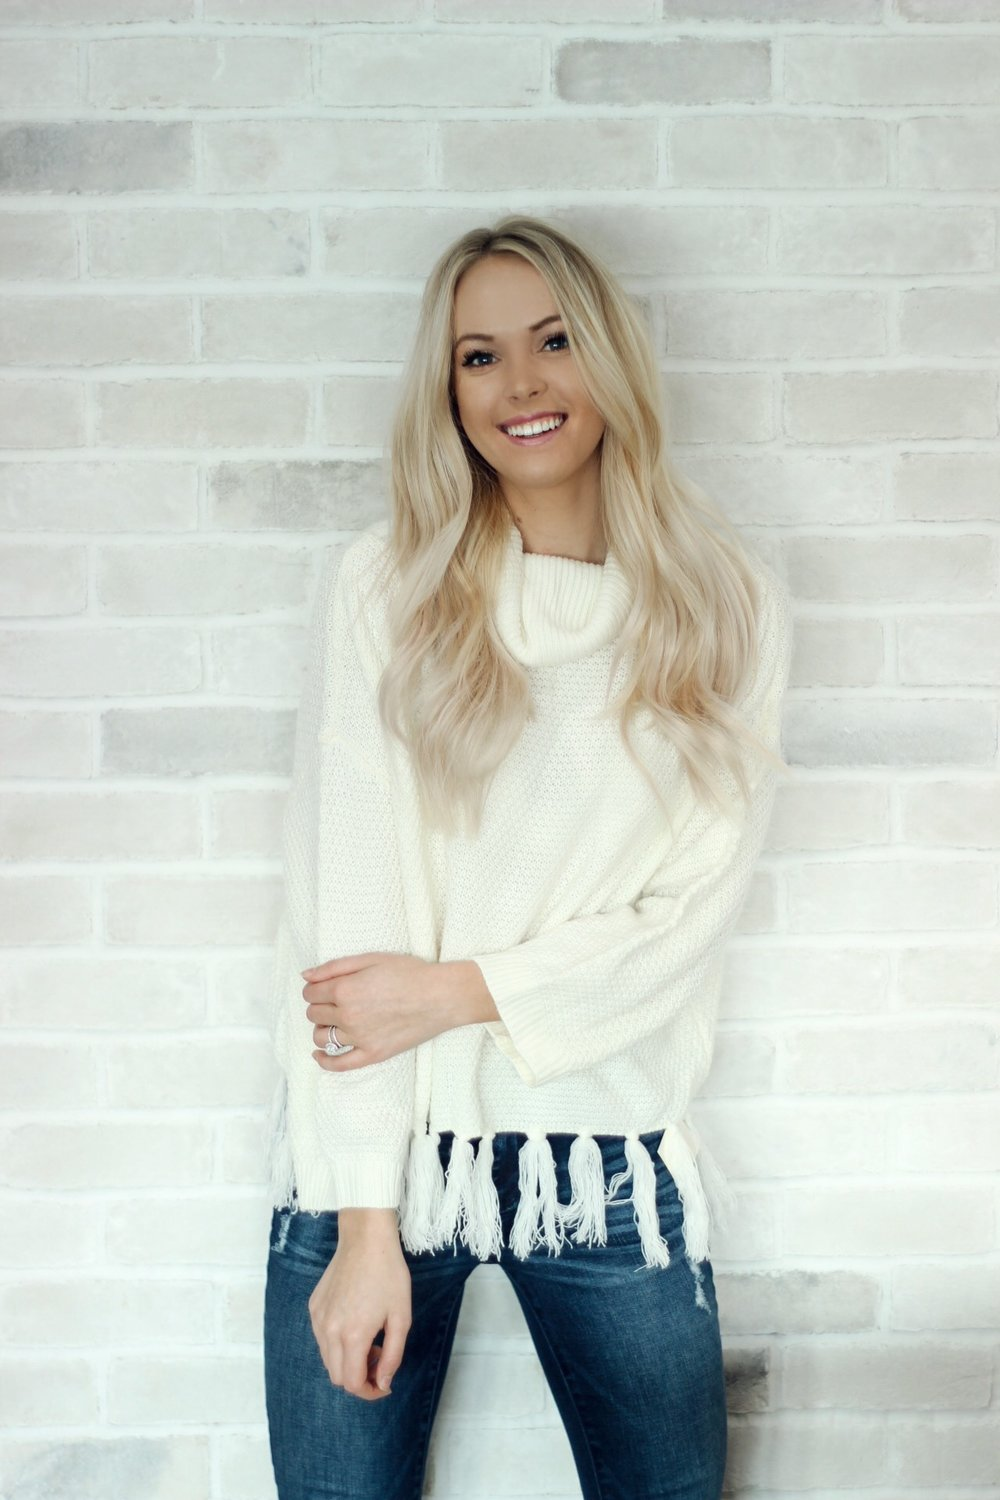 Fringe sweater will be available for $32!